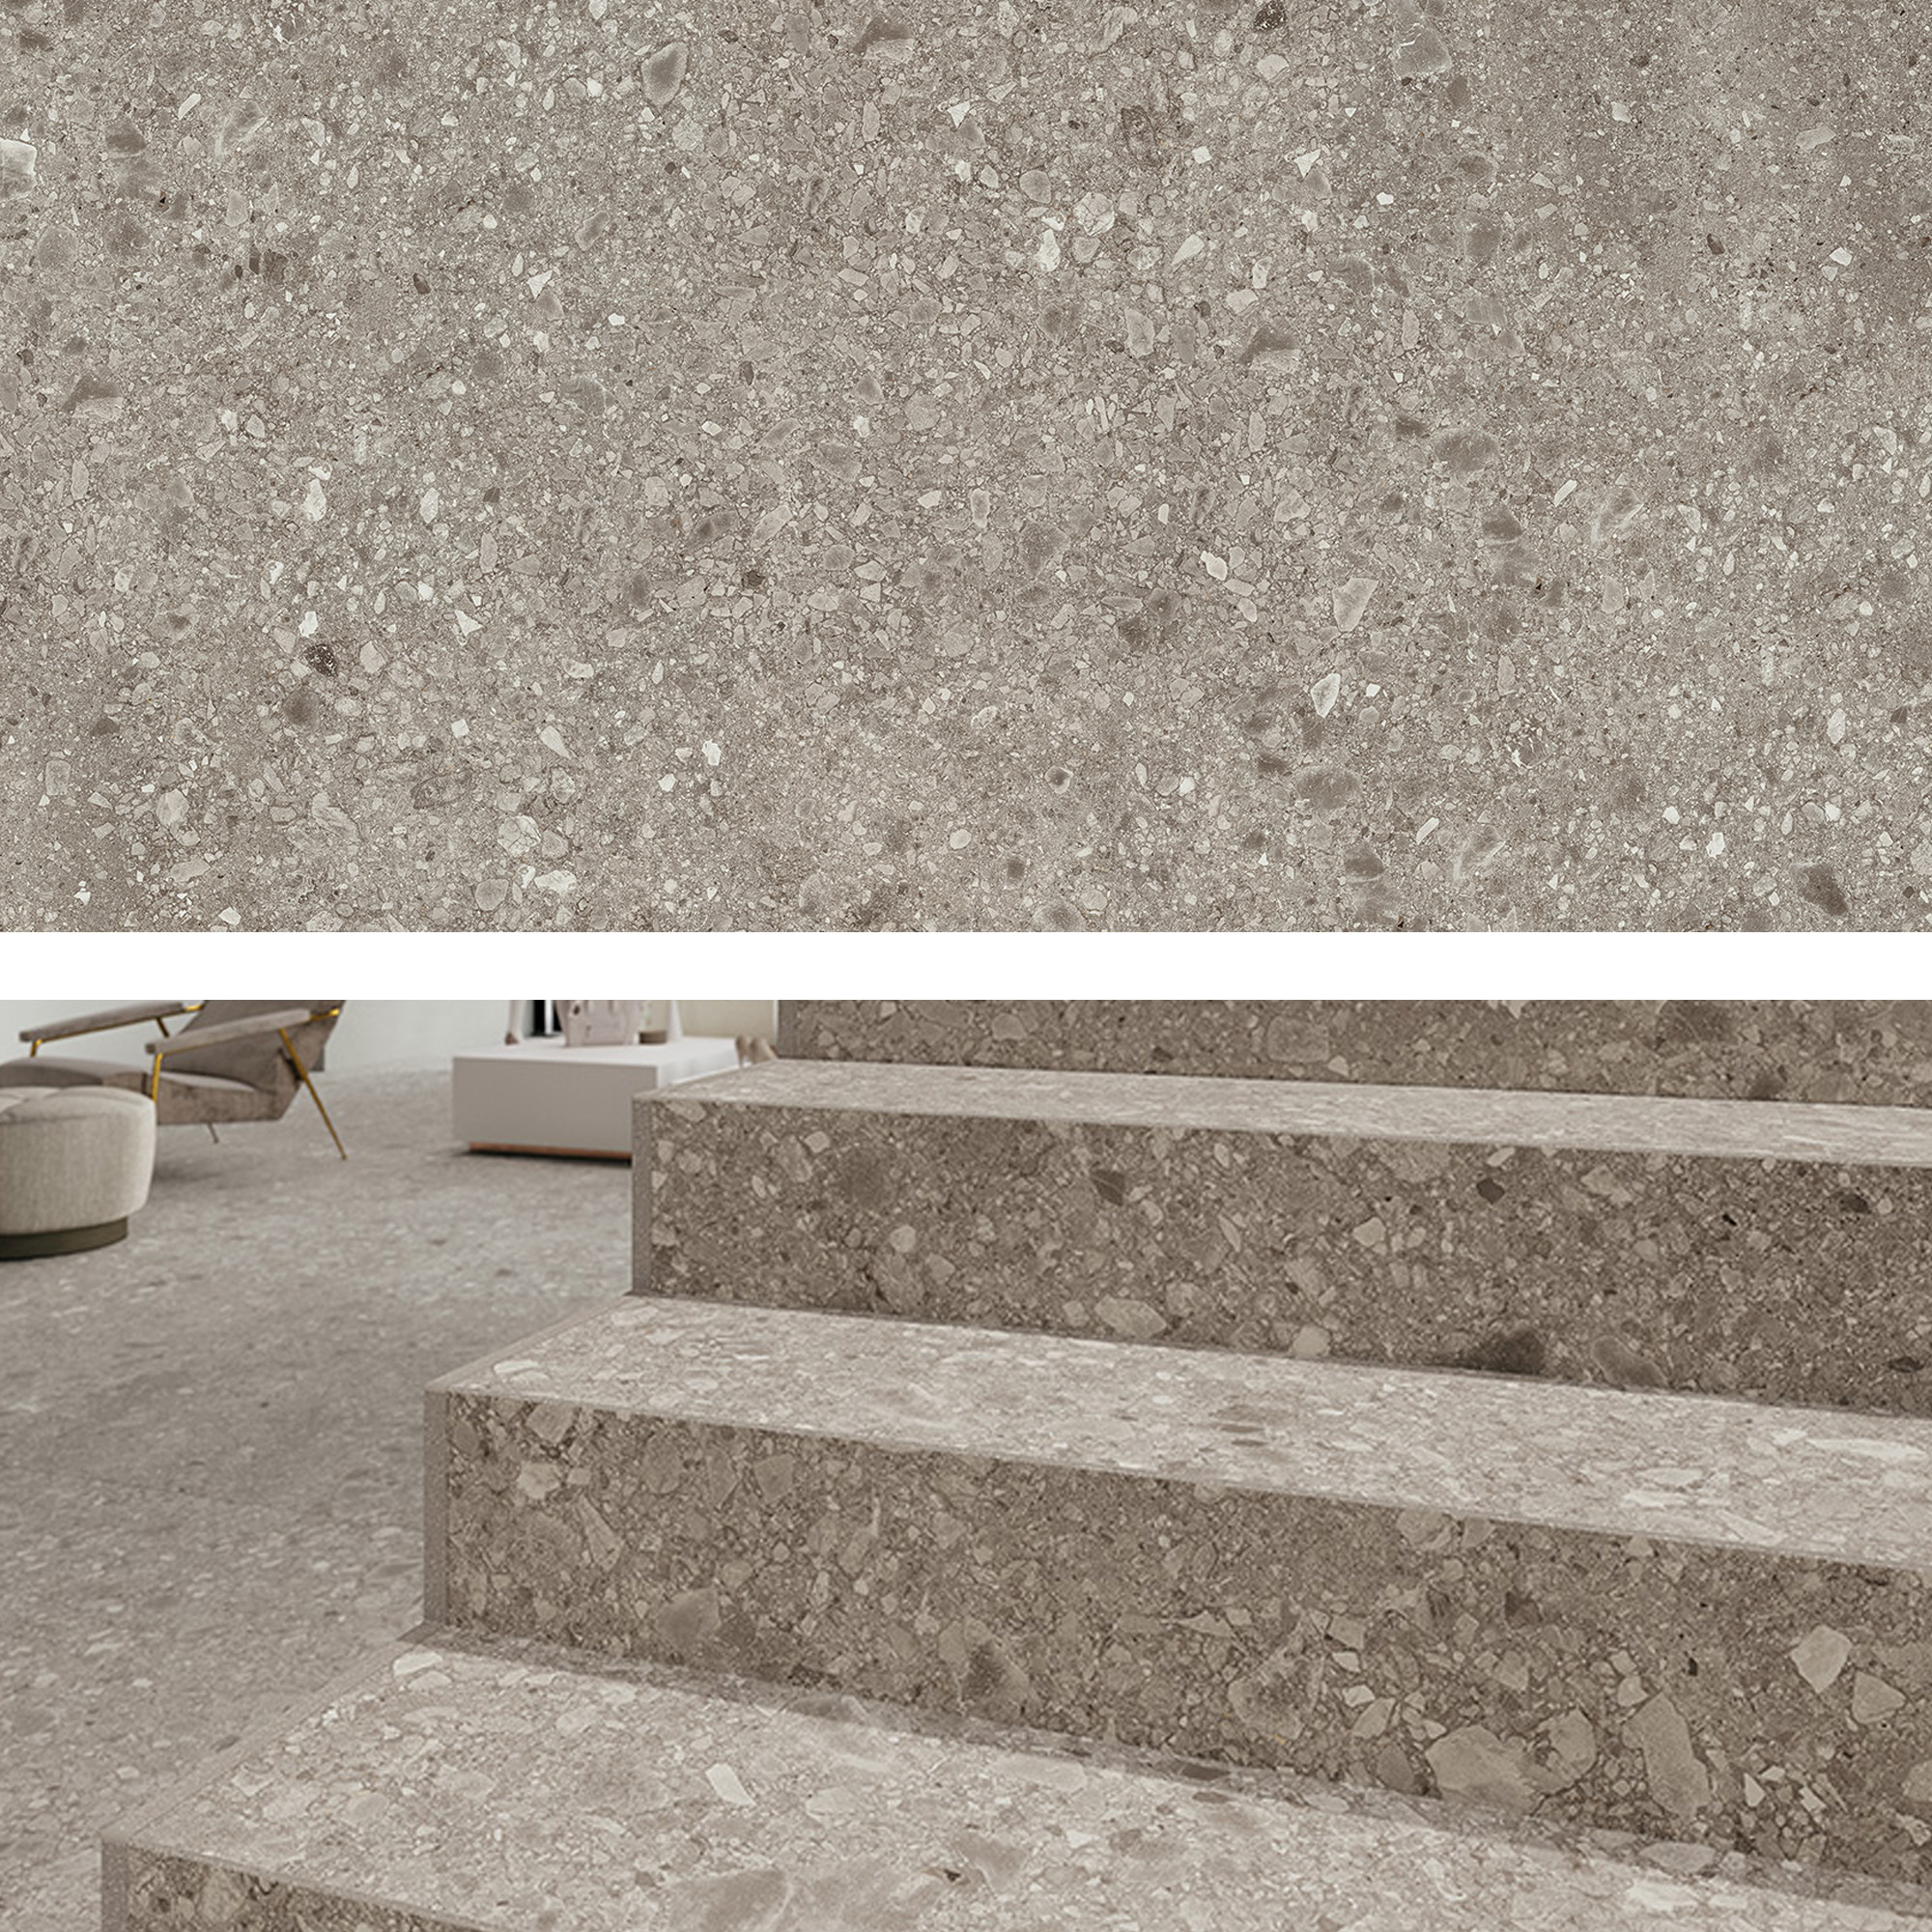 Porcelain Stairs Colorstone remodeling